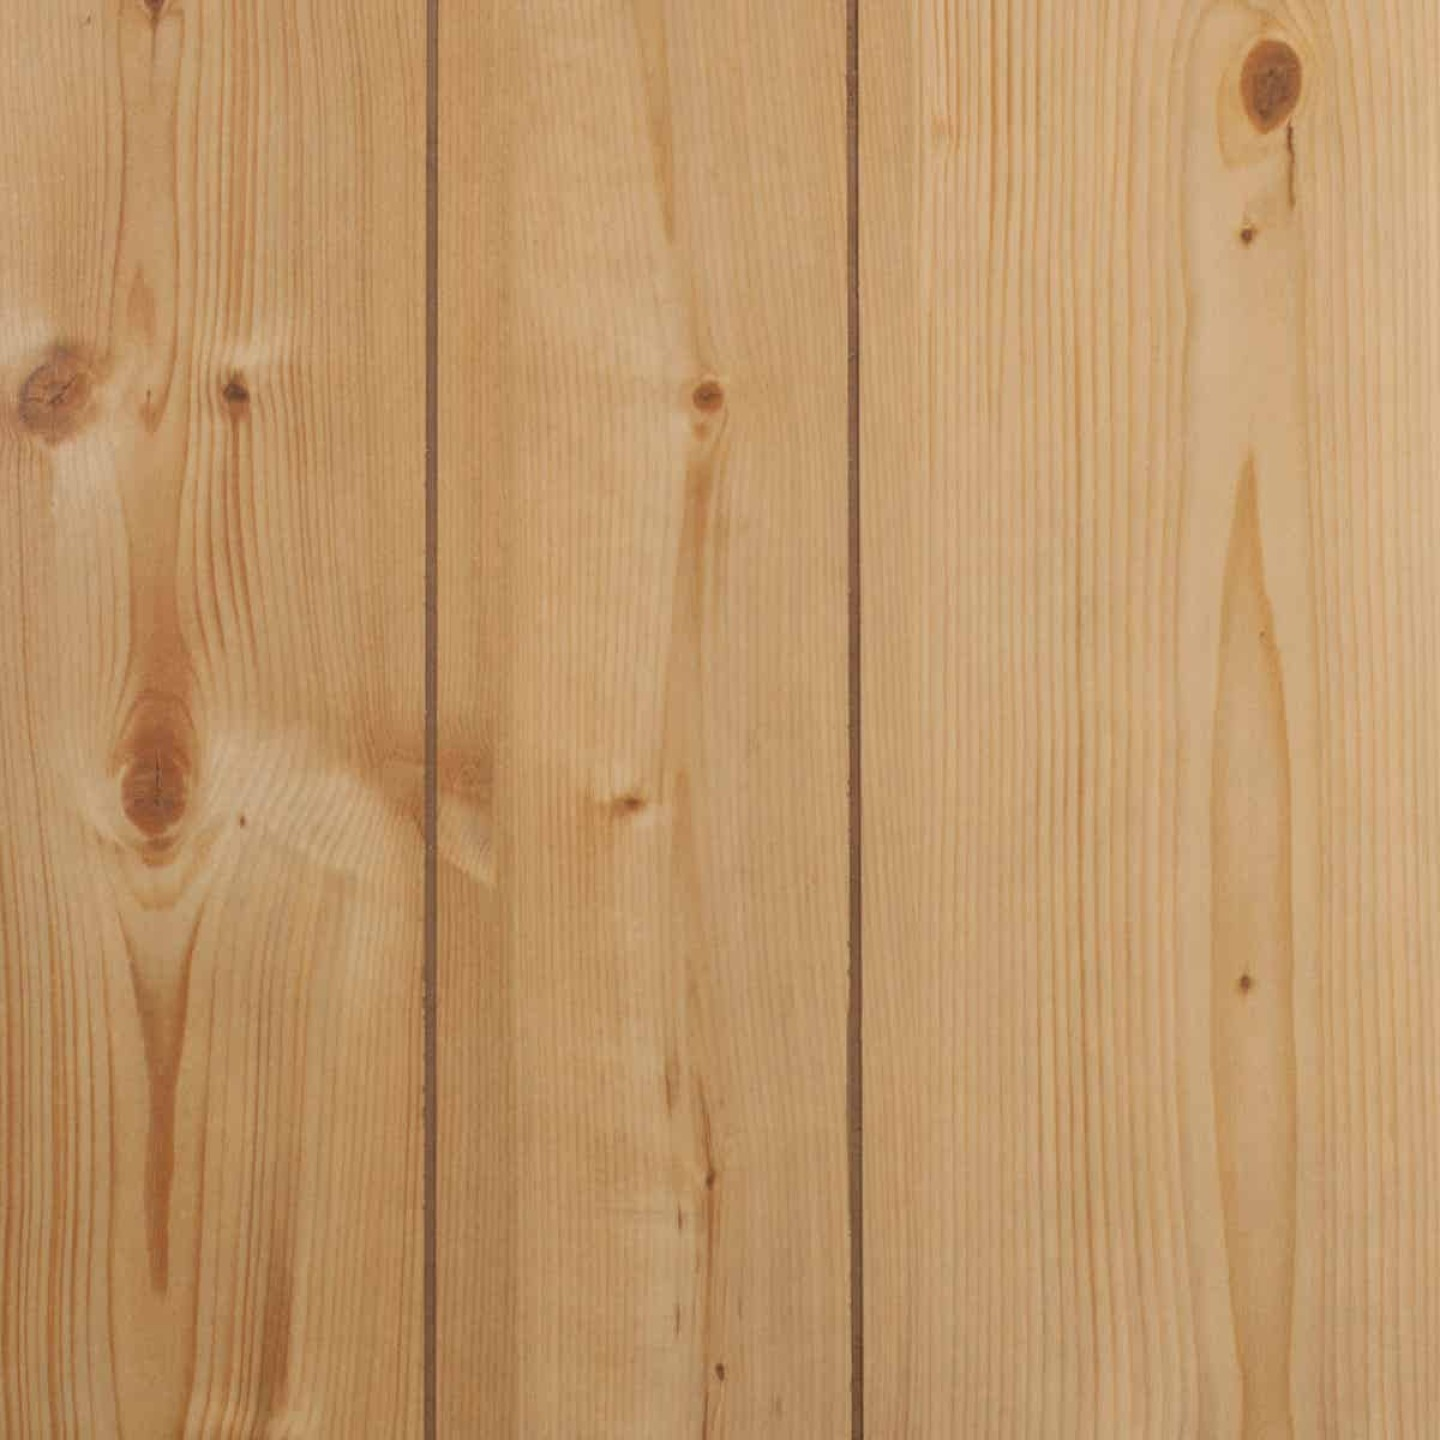 Global Product Sourcing 4 Ft. x 8 Ft. x 1/4 In. Pioneer Pine Random Groove Profile Wall Paneling Image 1